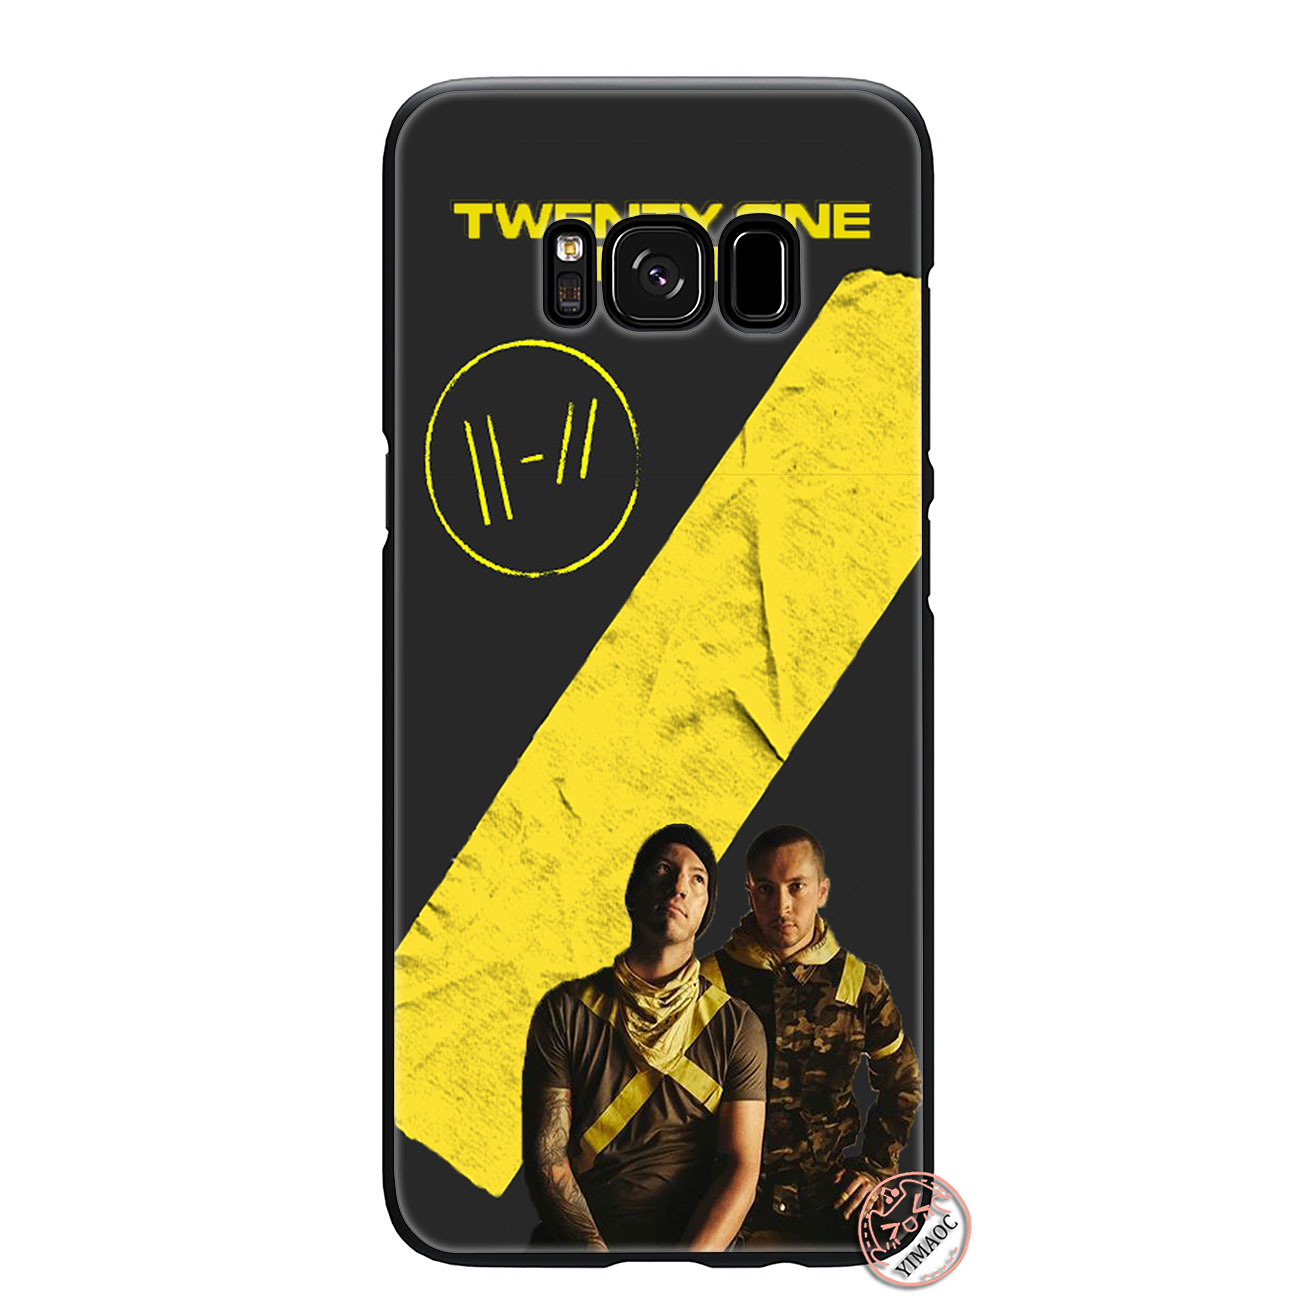 US $2 48 17% OFF|YIMAOC twenty one pilots Trench Soft Silicone Phone Case  for Samsung Galaxy S10 Plus S9 S8 Plus S6 S7 Edge S10e E Black Cover-in